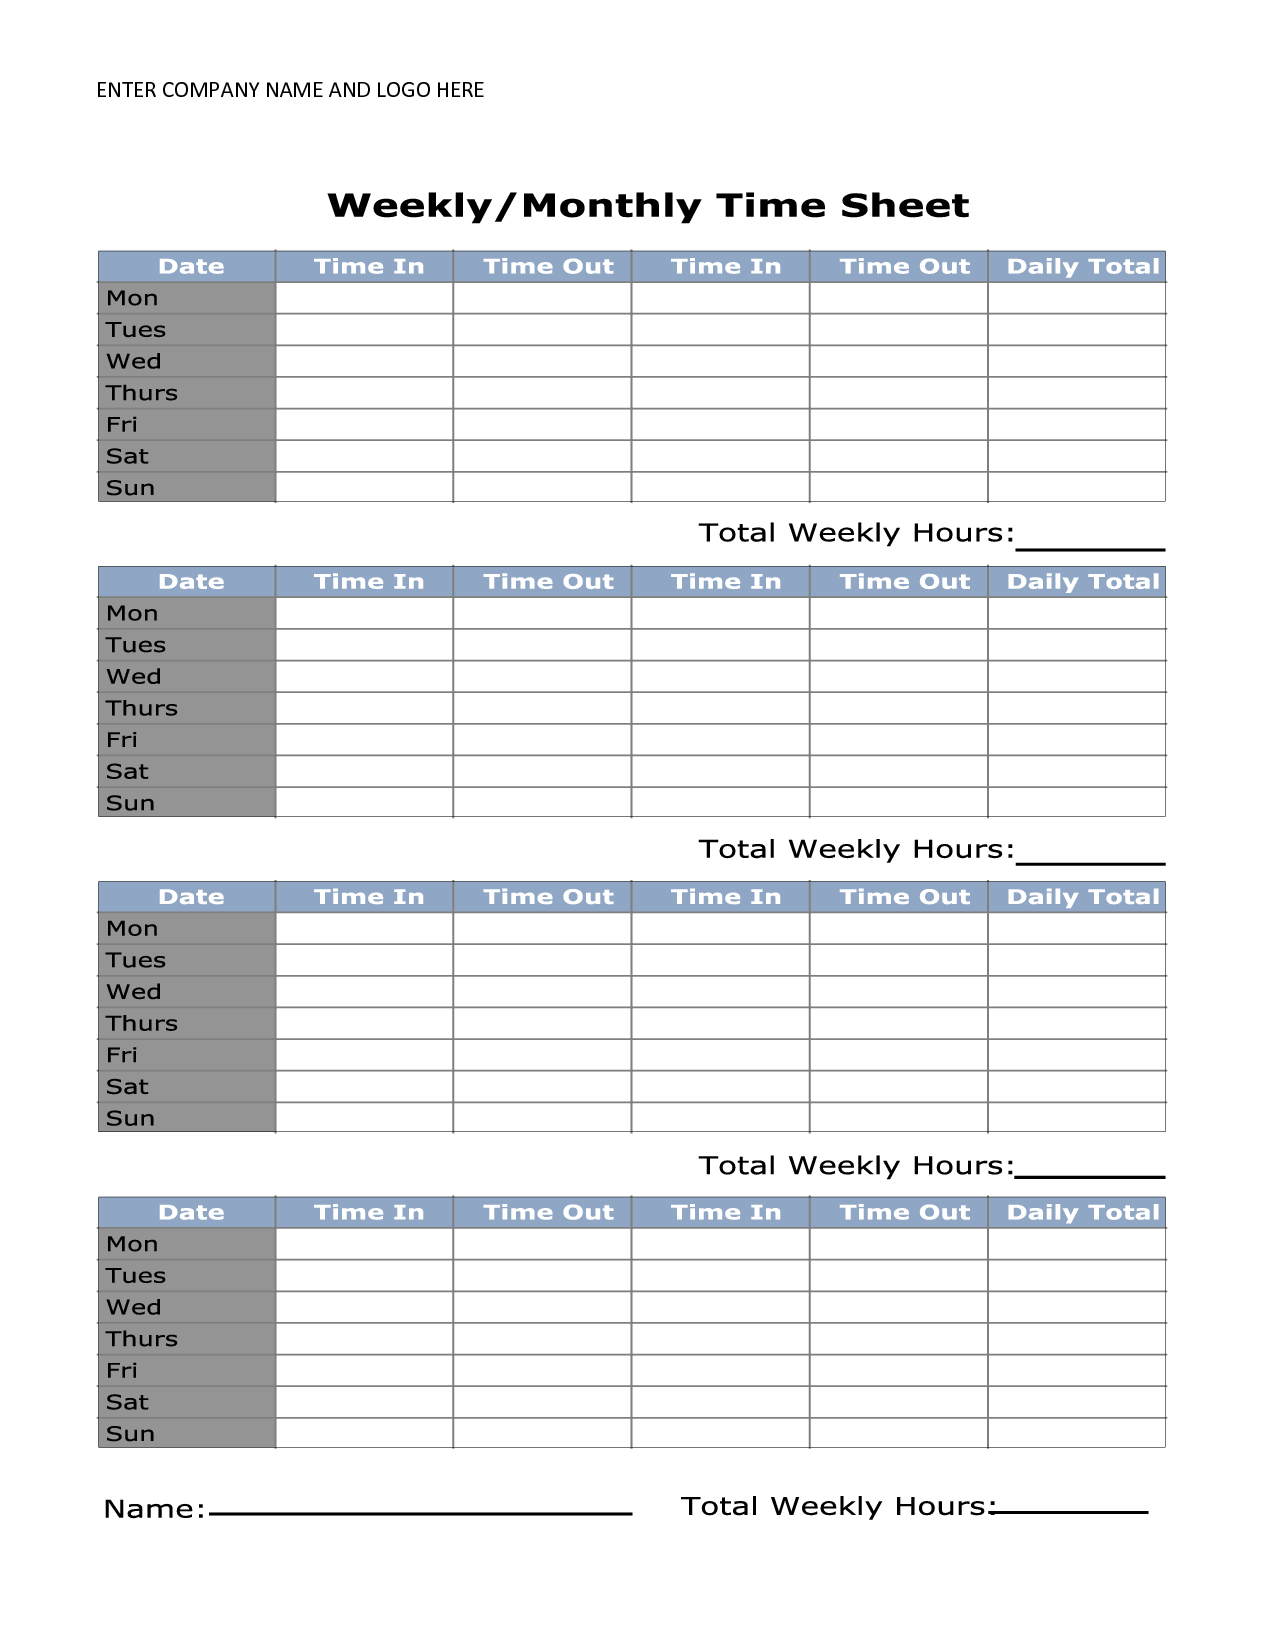 Free Printable Monthly Time Sheets | Time Sheet | Timesheet Template - Monthly Timesheet Template Free Printable